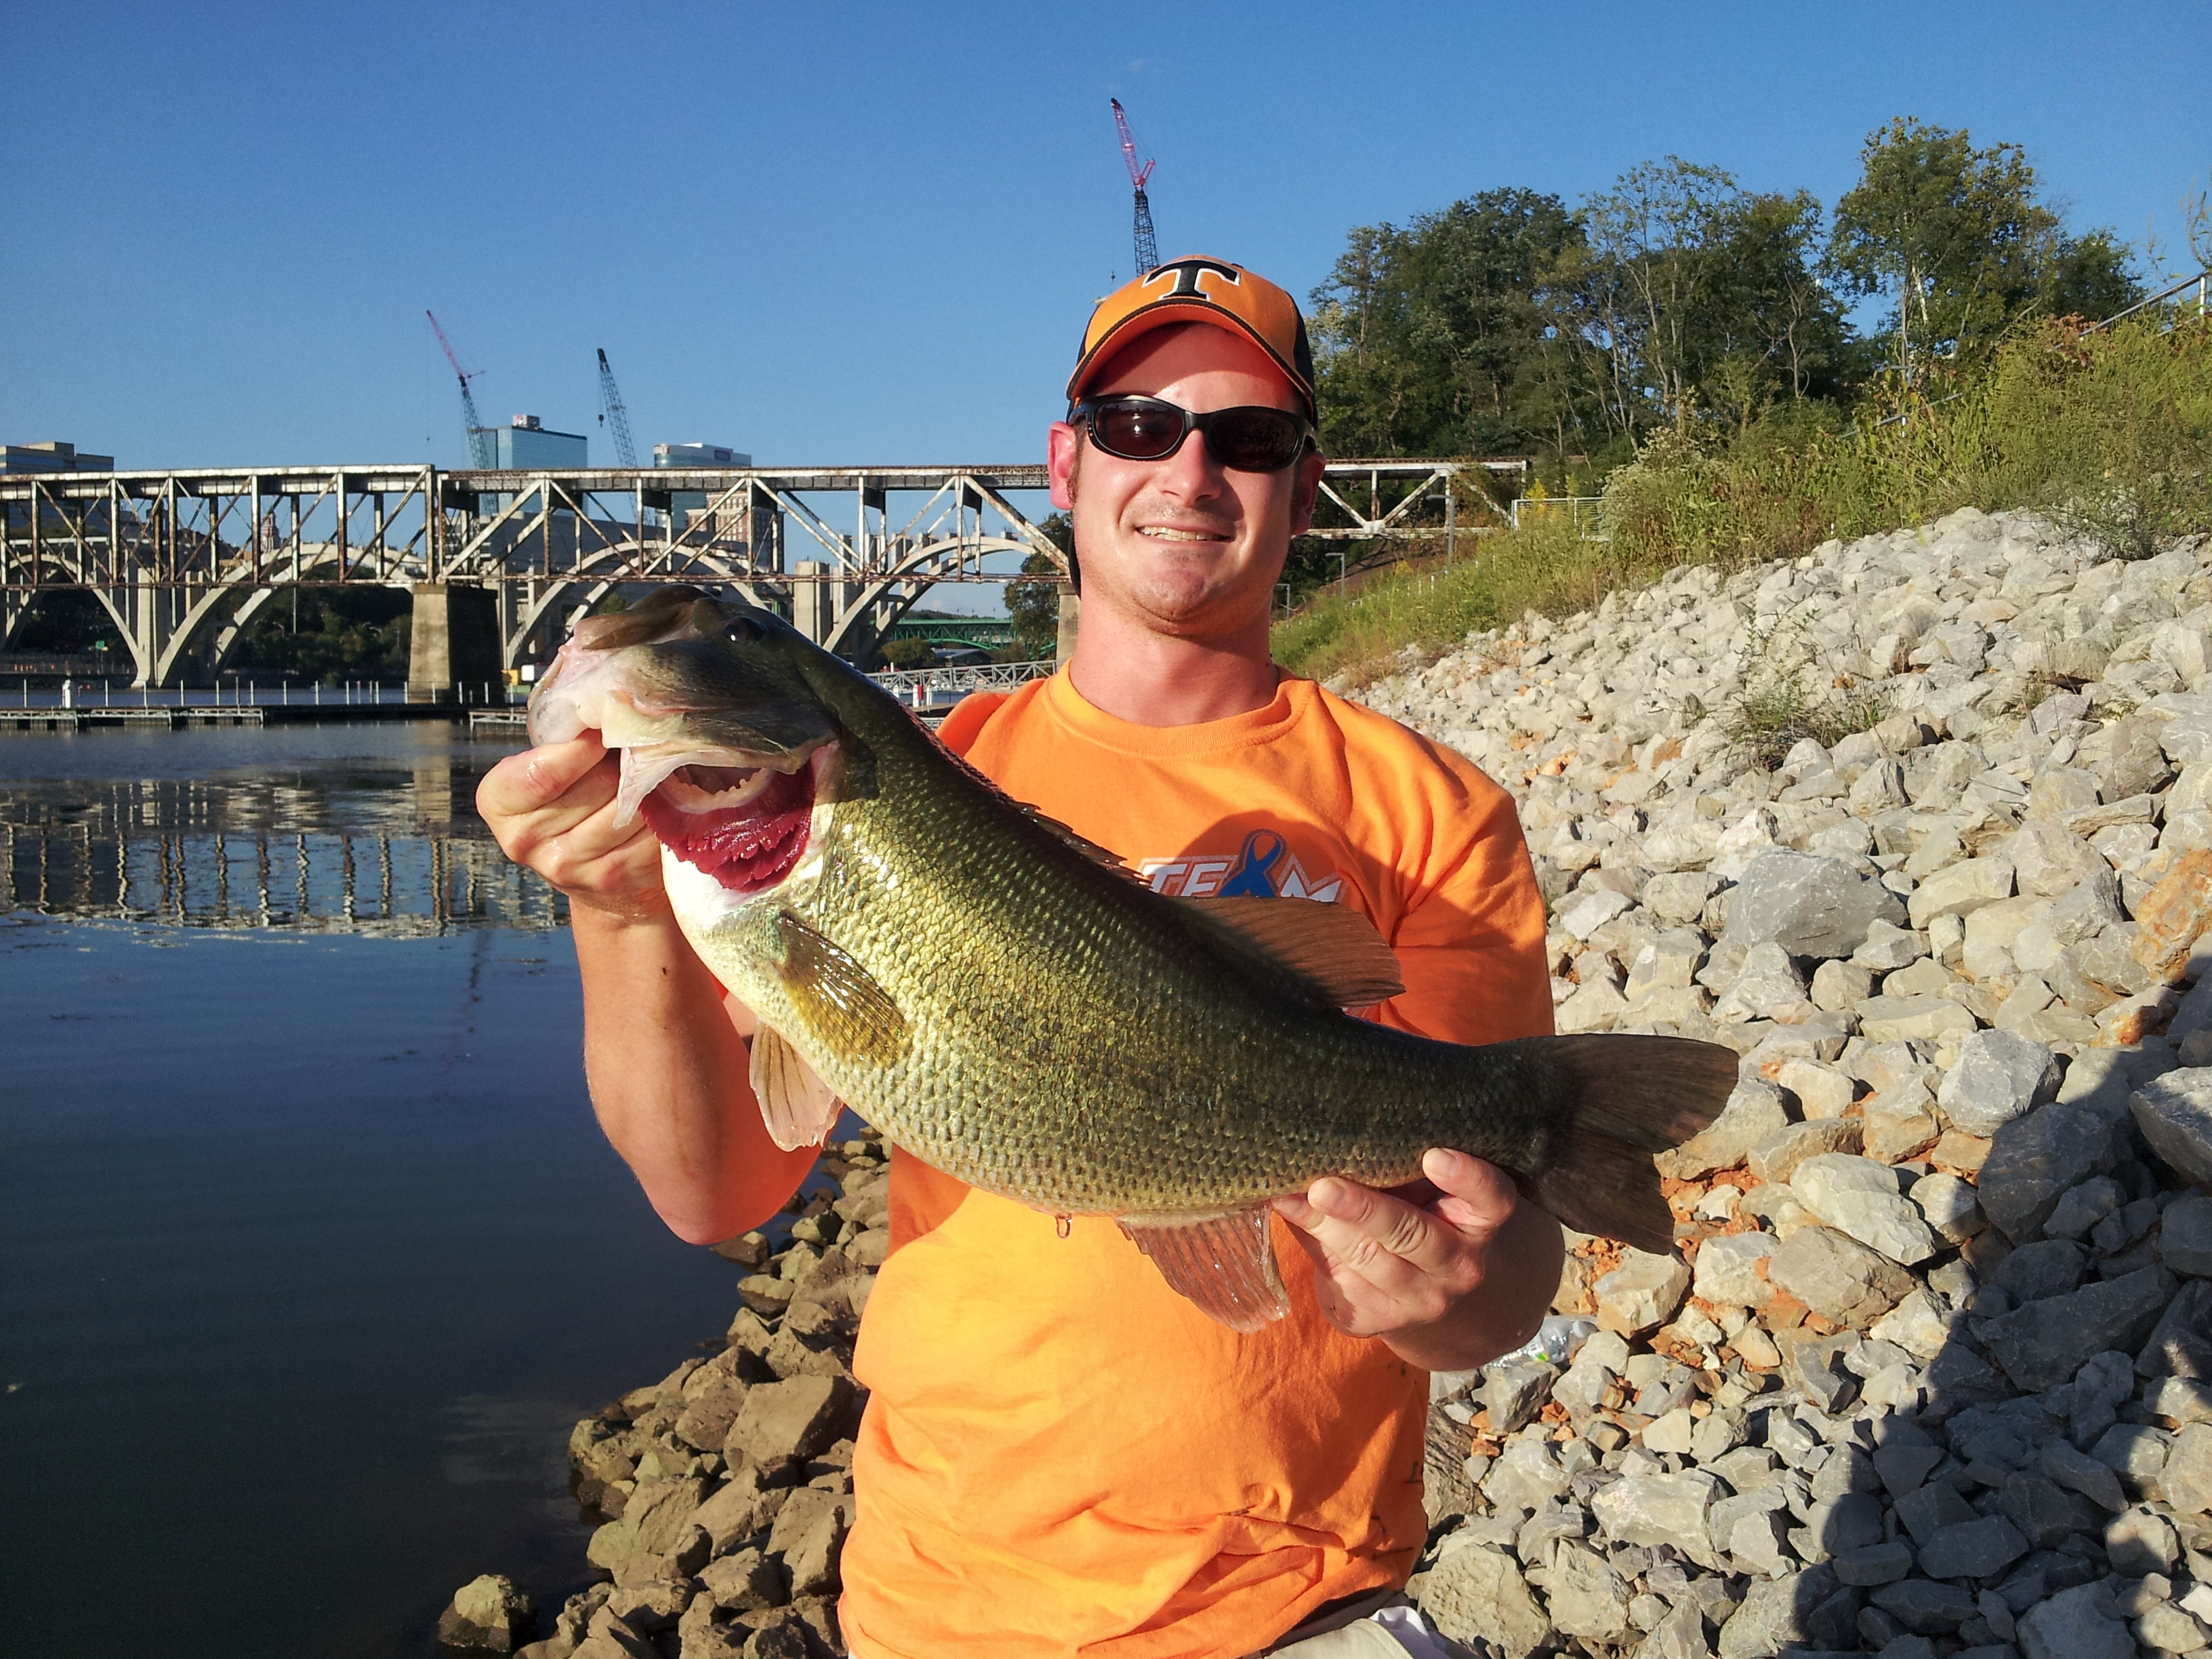 Top Spots For Prime Bass Fishing In Knoxville Visit Knoxville